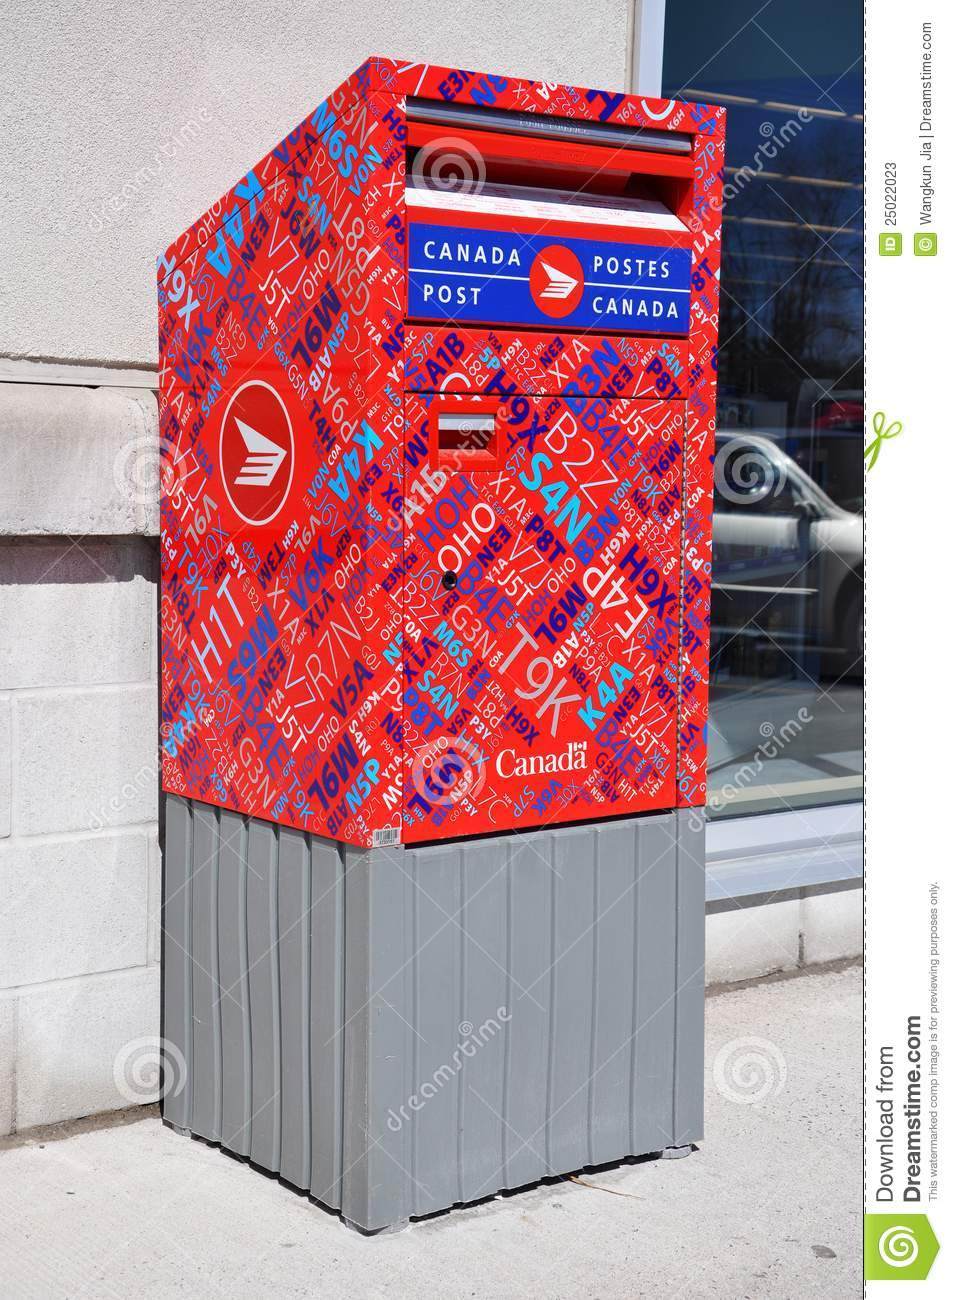 Canada Post Mail Box Editorial Stock Photo - Image: 25022023